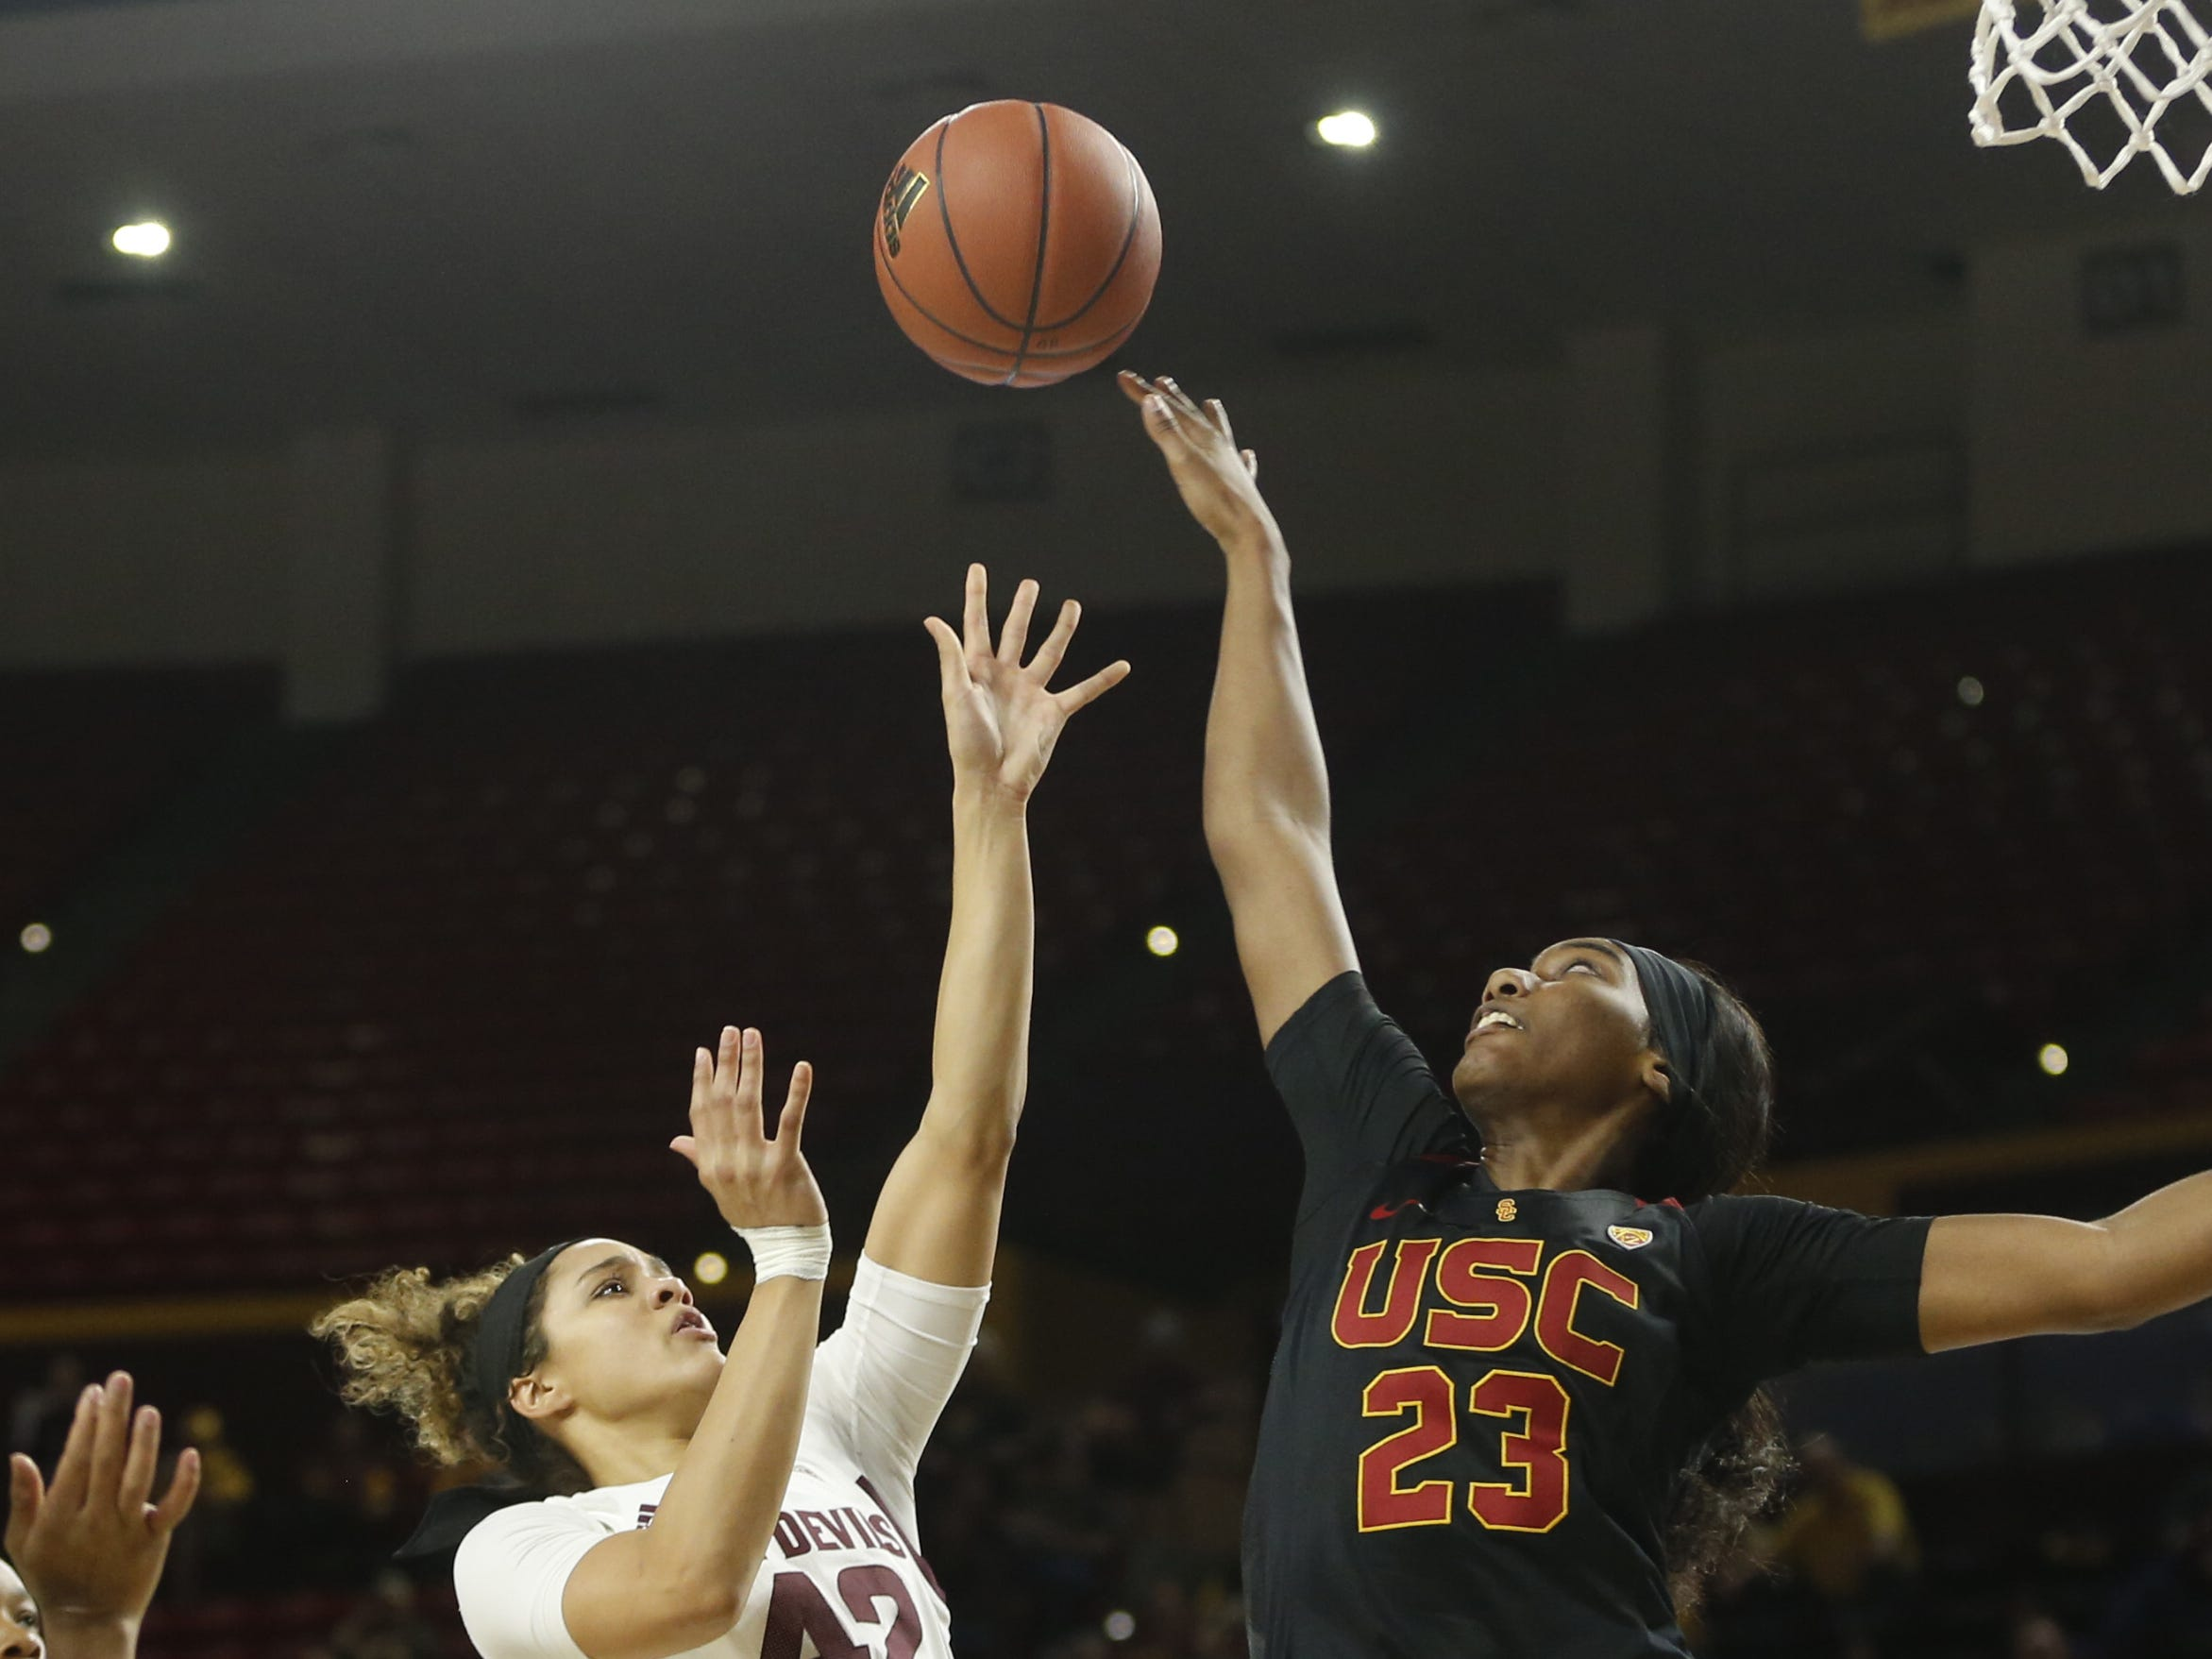 ASU's Kianna Ibis (42) shoots against USC'S Asiah Jones (23) during the first half at Wells Fargo Arena in Tempe, Ariz. on January 27, 2019.